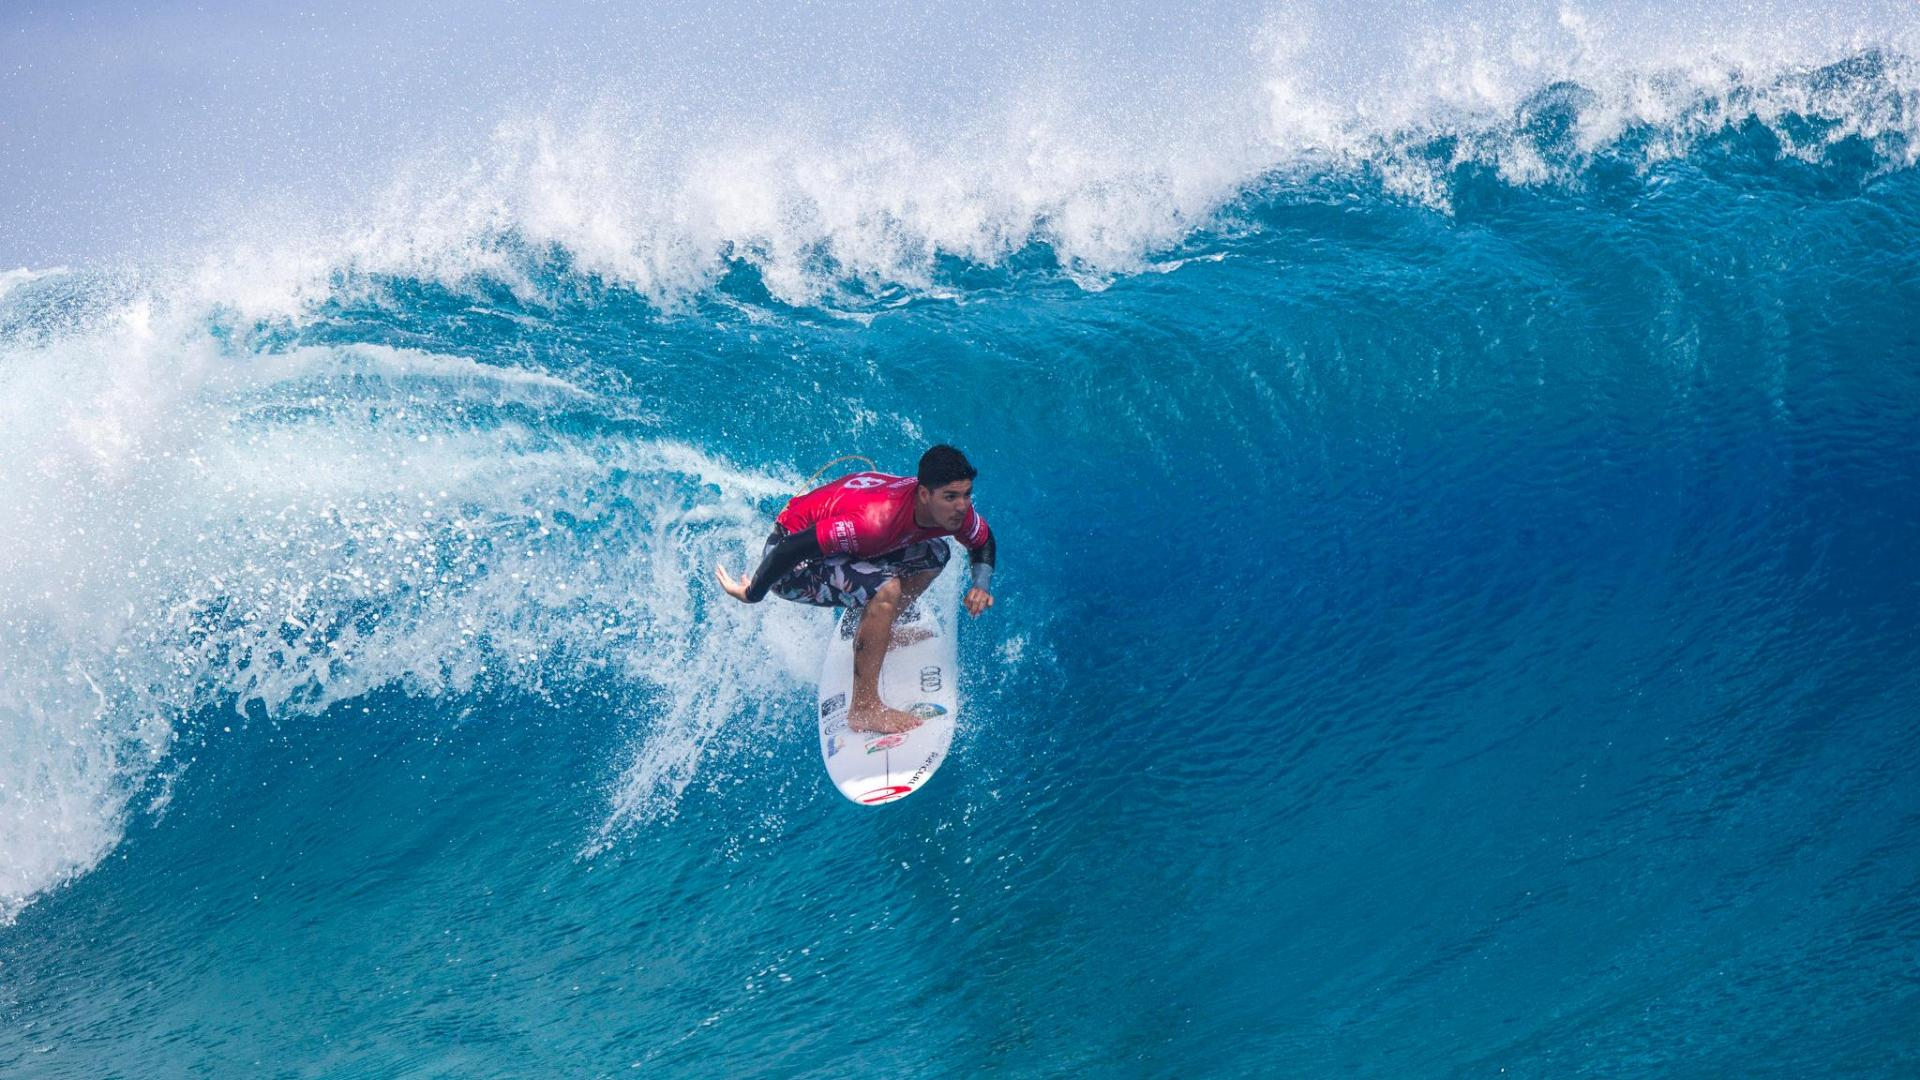 Tune in to the WSL's Billabong Pro Tahiti on ABC